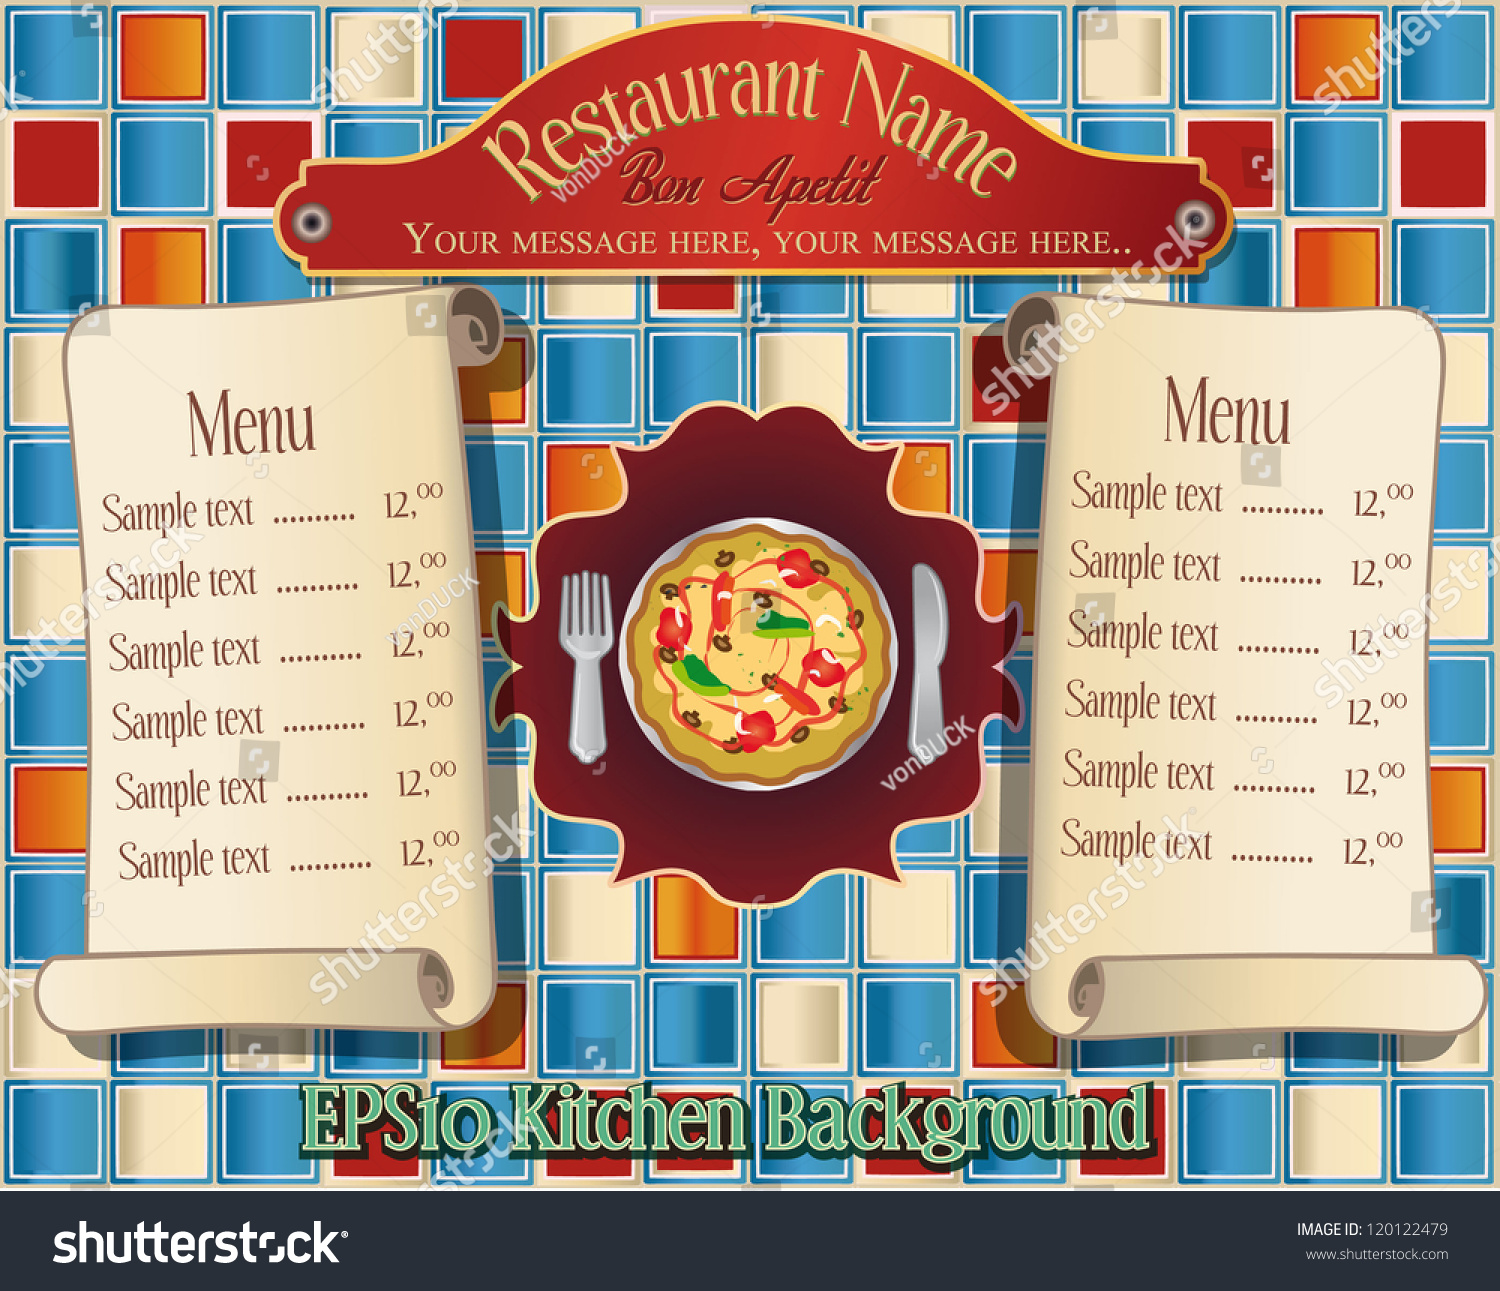 Restaurant Kitchen Illustration editable vector illustration pizza menu scrolls stock vector